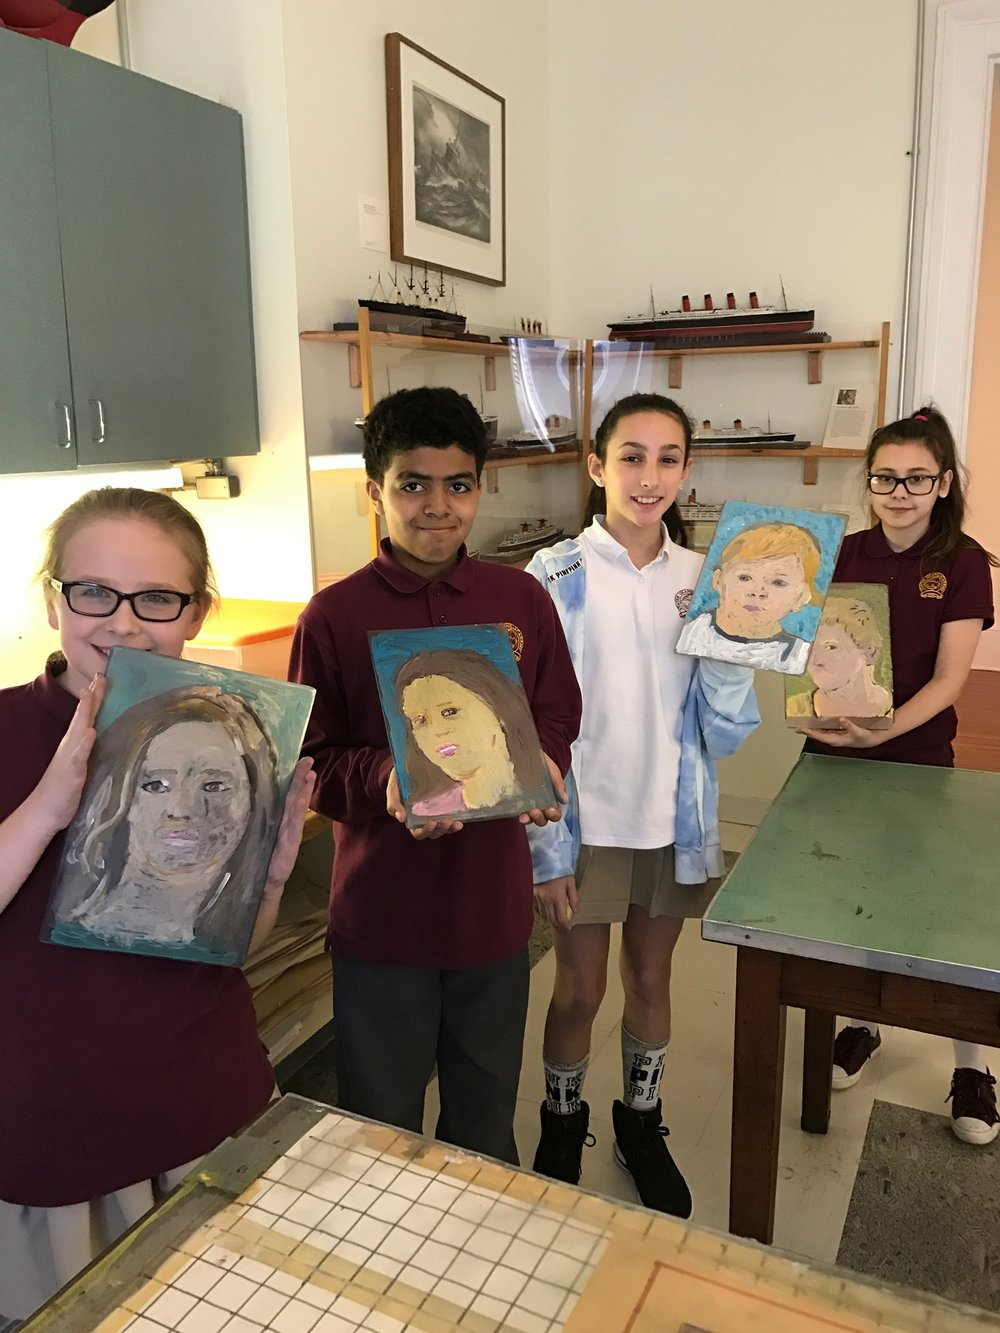 Staten Island Academy sixth grade students created portraits in the museum's printmaking studio.  Here they are displaying the monoprint plates they painted while waiting to transfer them to paper on our intaglio press.  PHOTO: Dawn Daniels